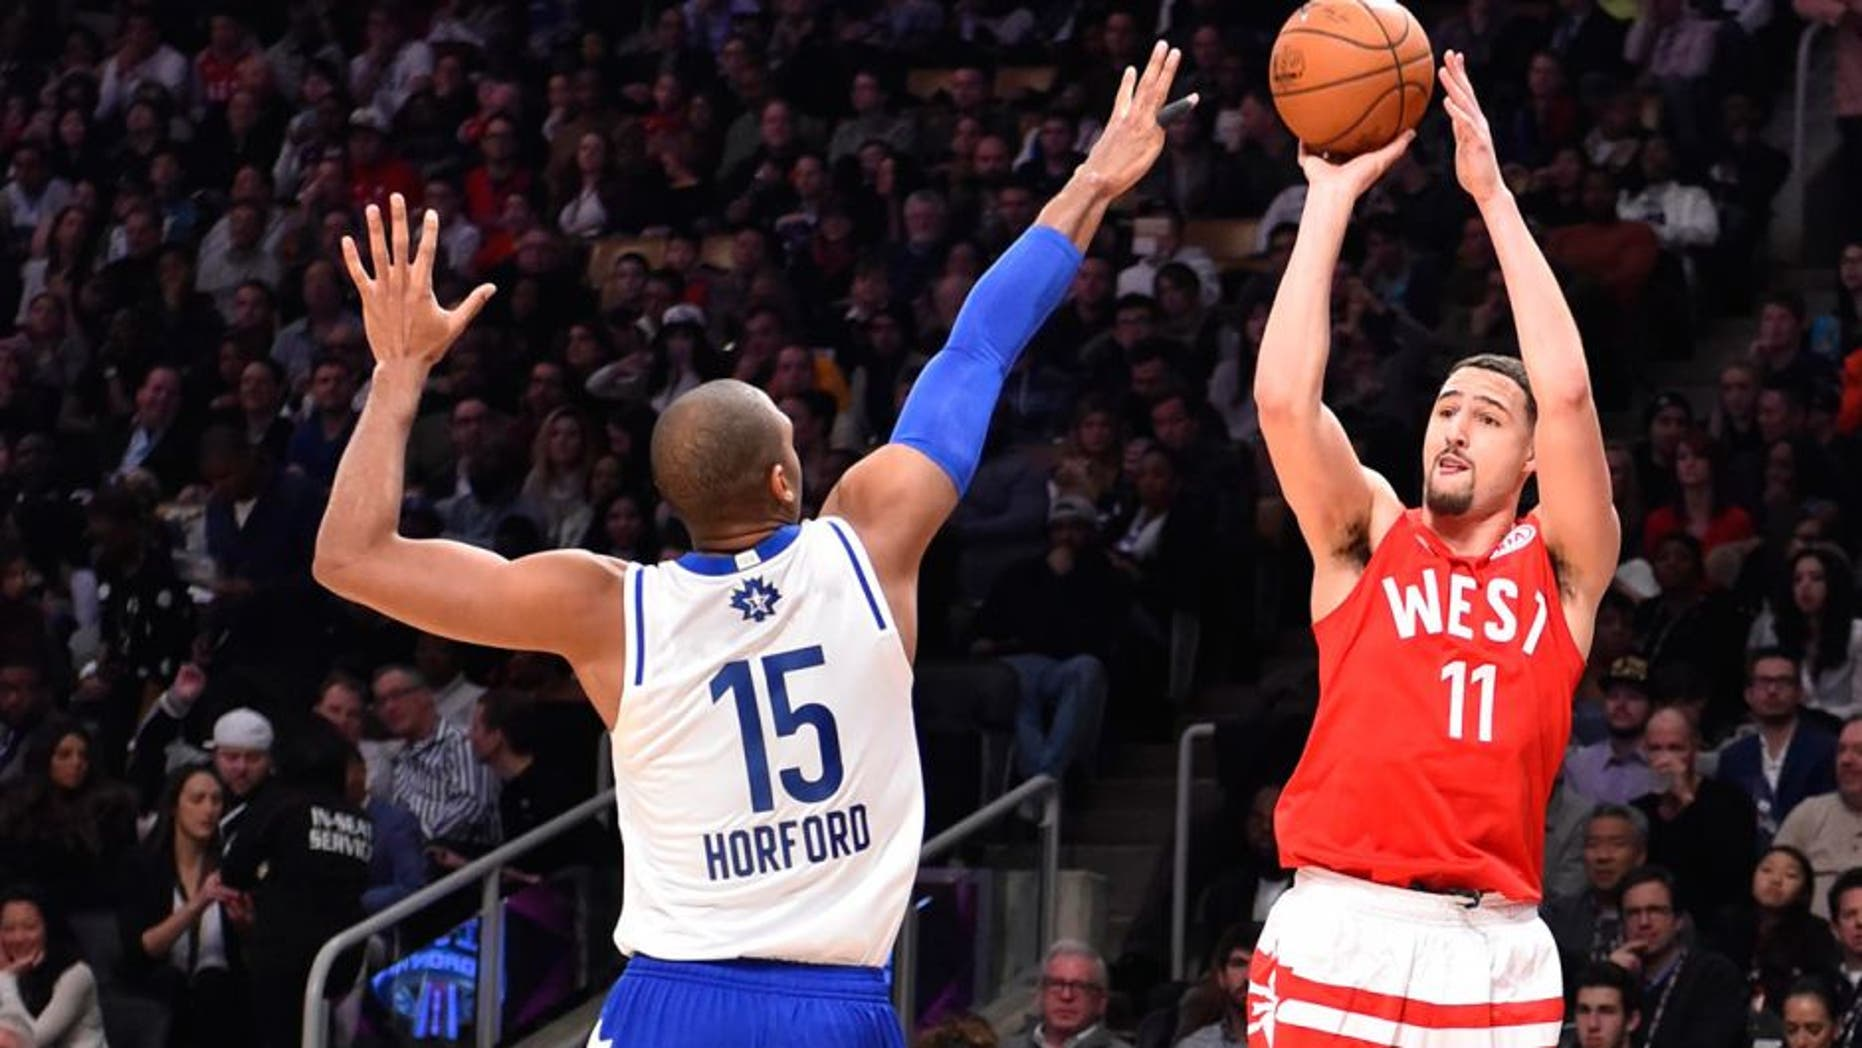 Feb 14, 2016; Toronto, Ontario, CAN; Western Conference guard Klay Thompson of the Golden State Warriors (11) shoots against Eastern Conference player Al Horford (15) of the Atlanta Hawks in the first half of the NBA All Star Game at Air Canada Centre. Mandatory Credit: Bob Donnan-USA TODAY Sports